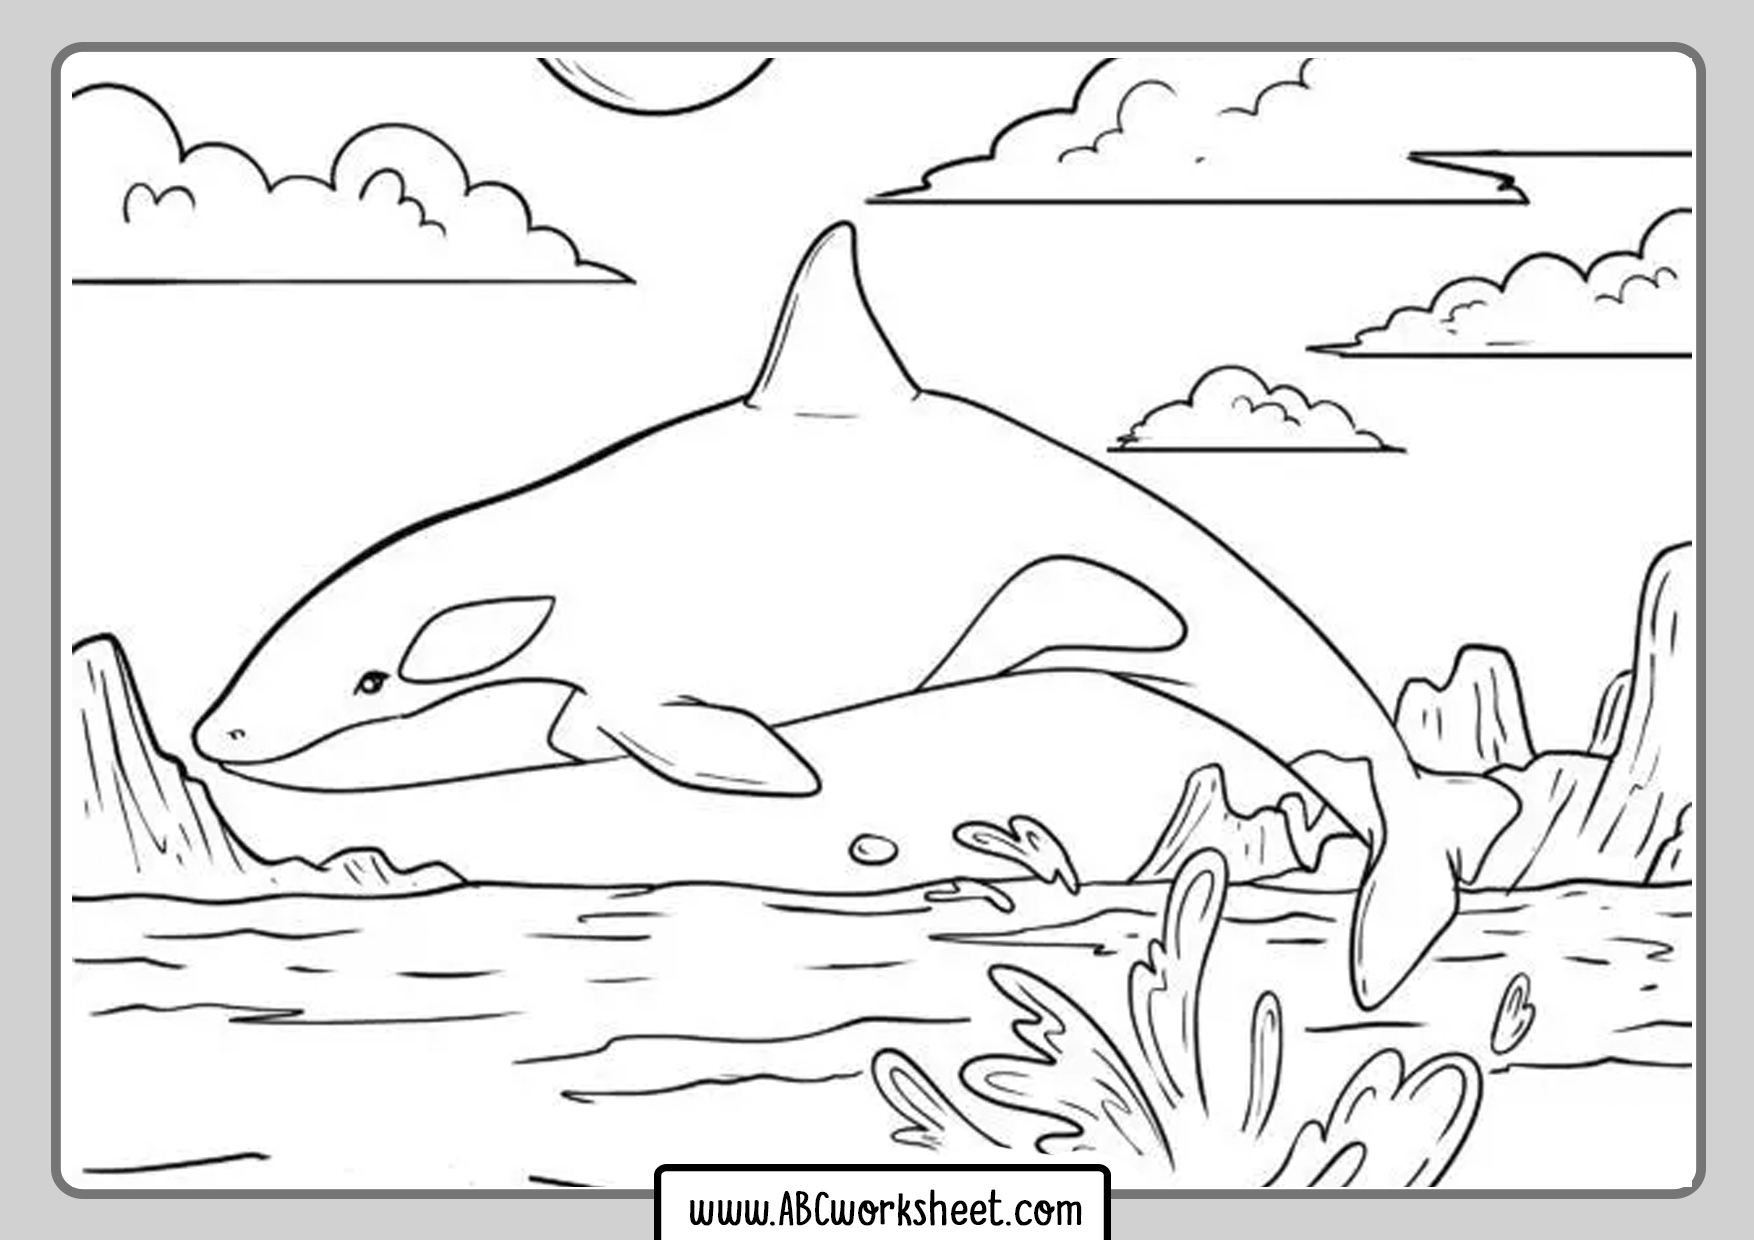 Killer Whale Orca Drawing For Coloring